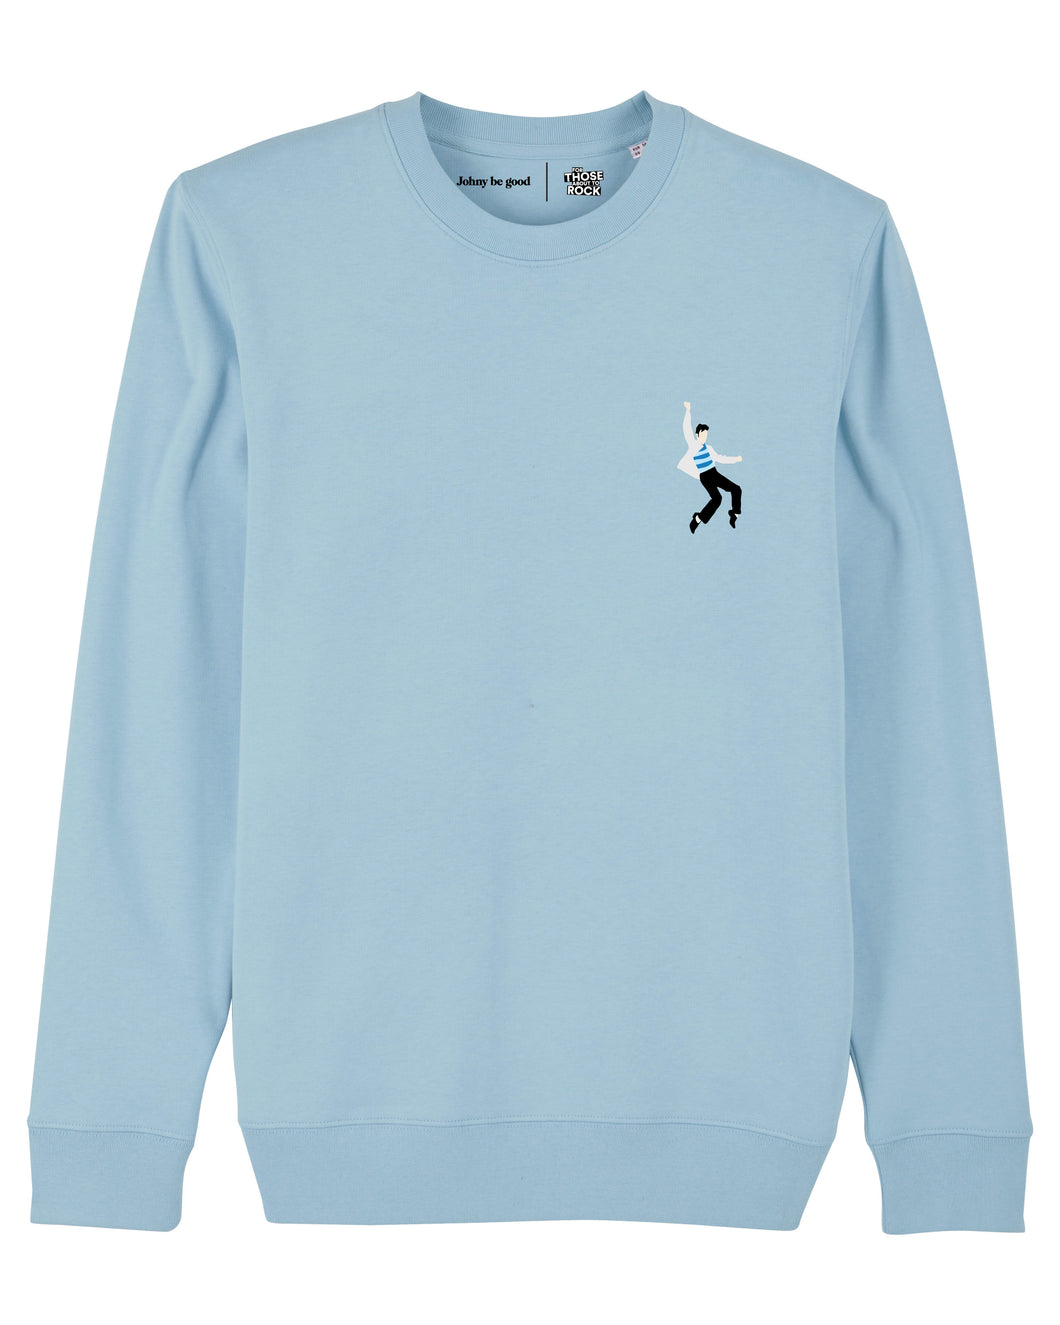 Sweater ELVIS blue- out of stock - preorder